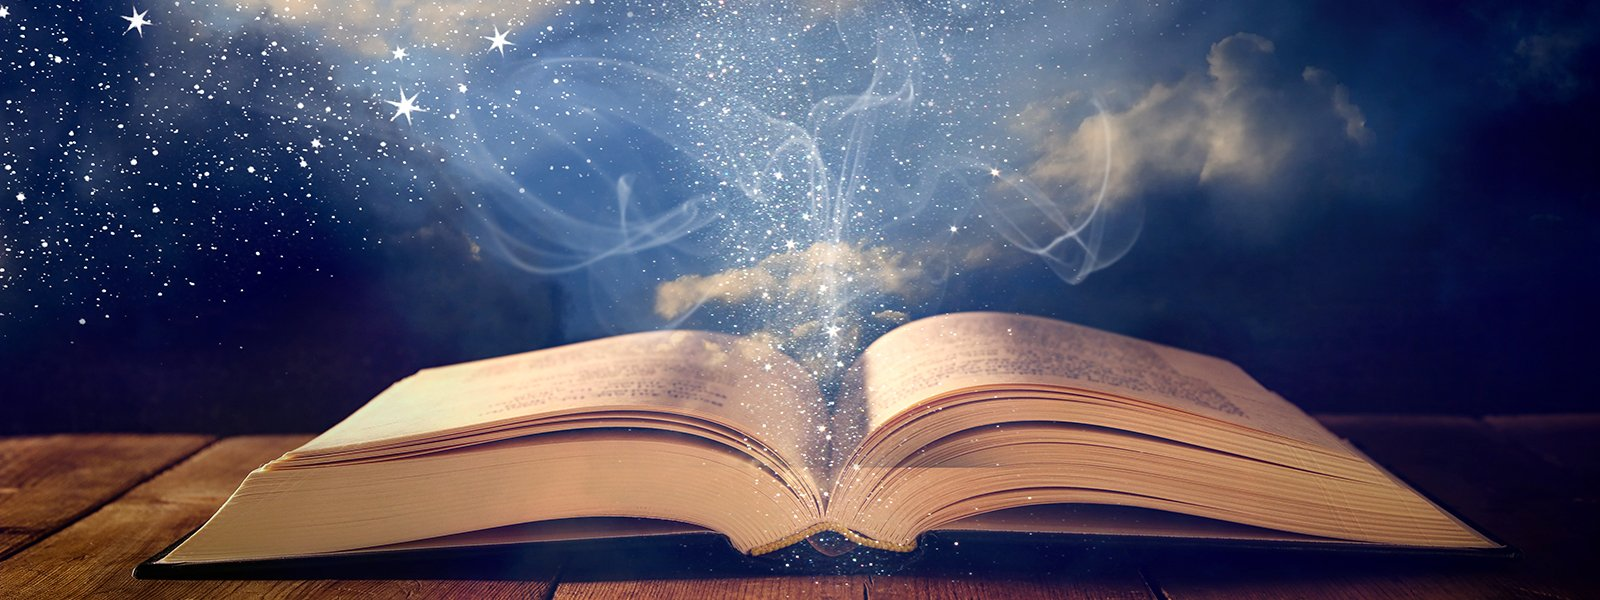 Book open for Akashic Records